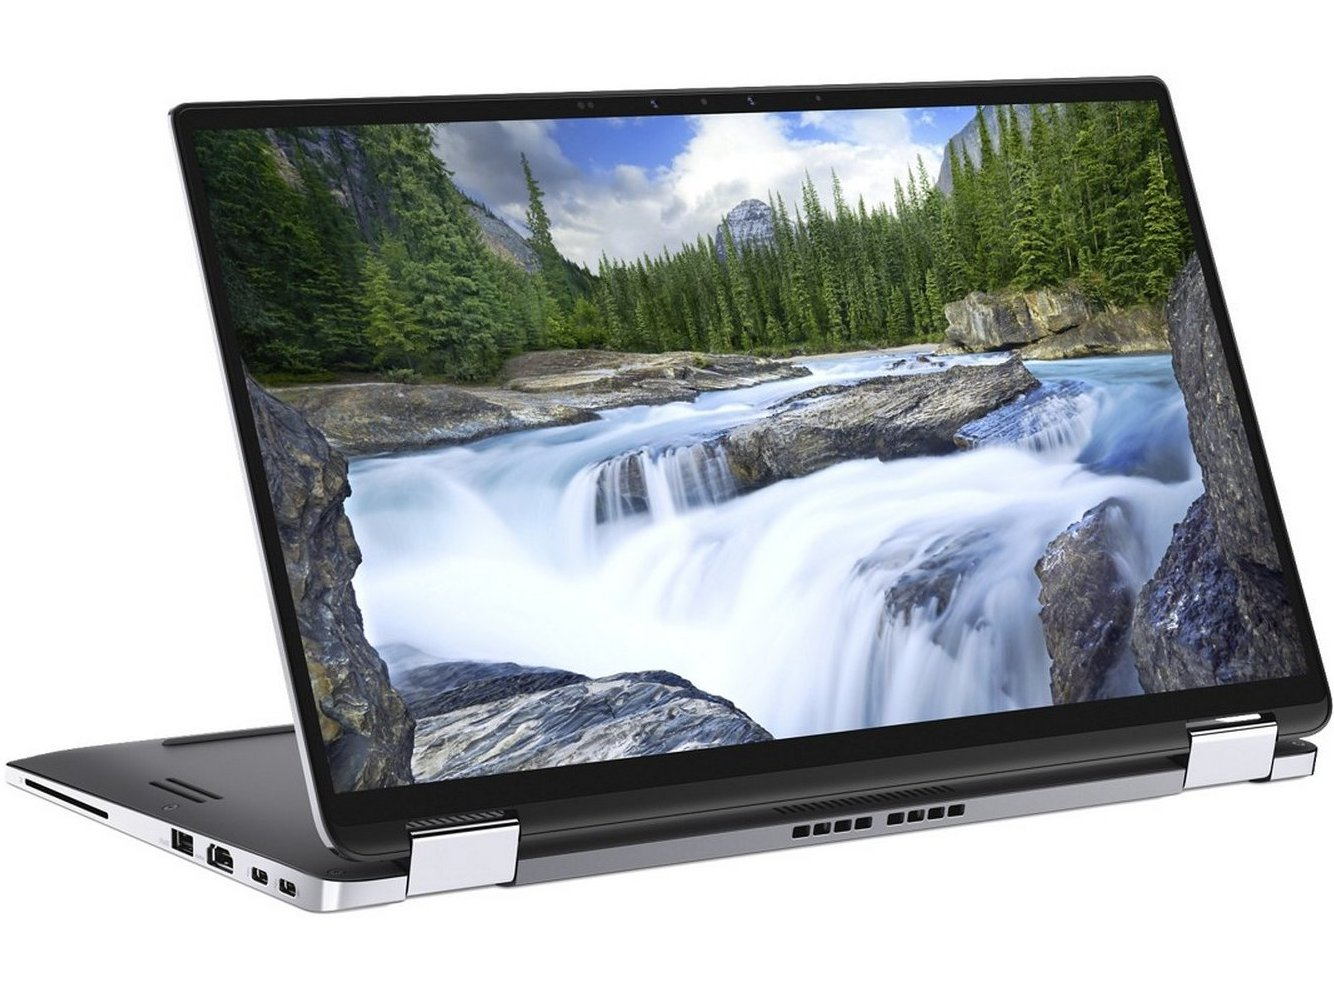 Dell Latitude 7400 2-in-1 (i7-8665U) Convertible Review